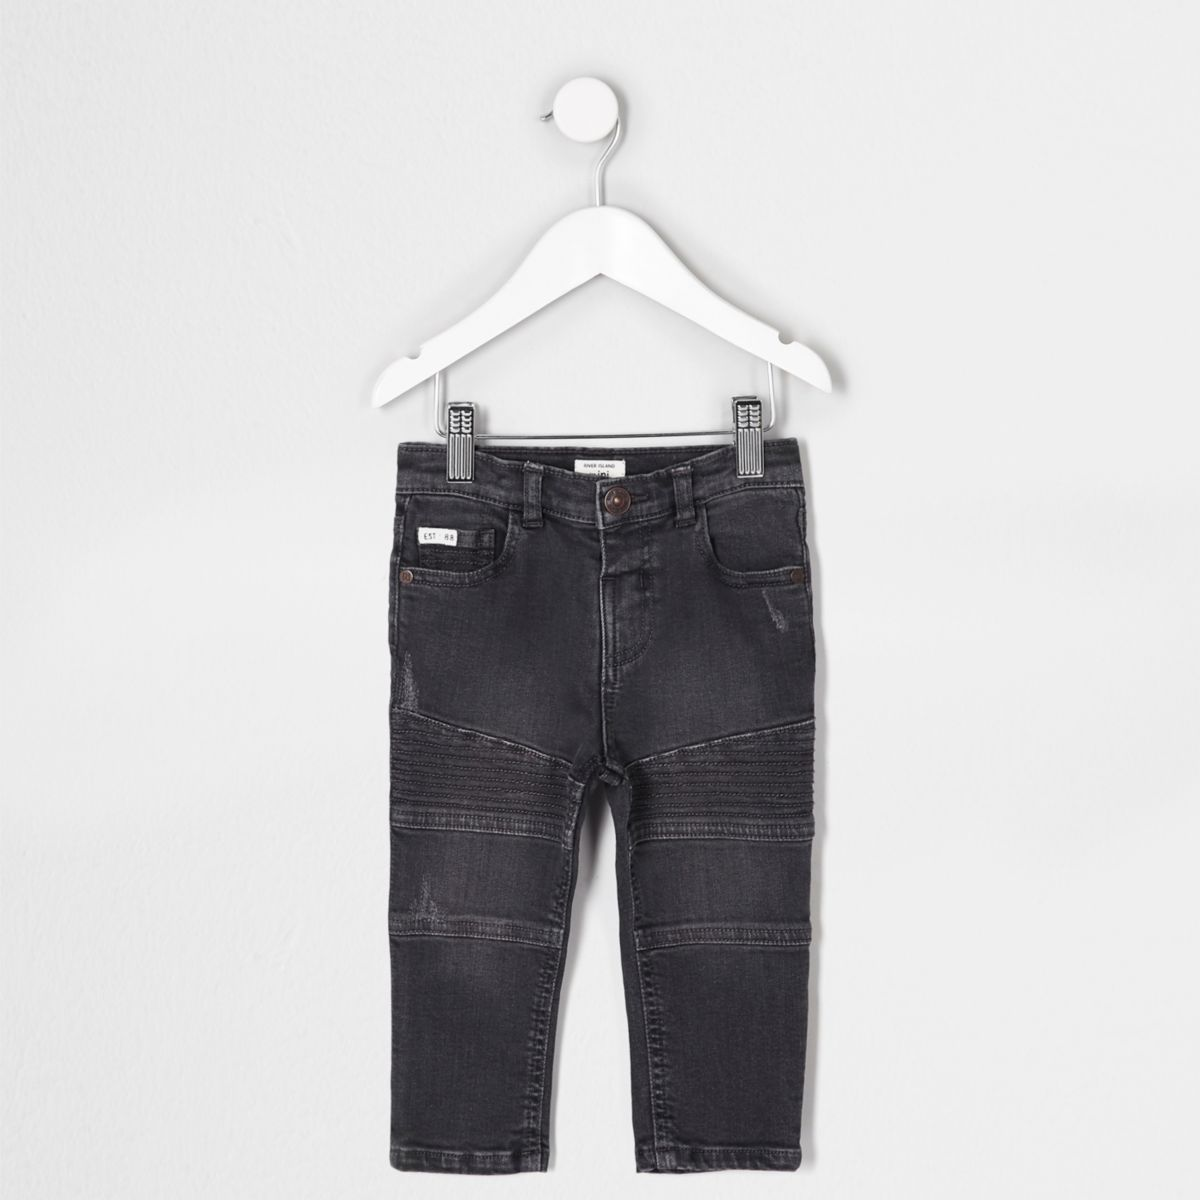 Shop for boys black skinny jeans online at Target. Free shipping on purchases over $35 and save 5% every day with your Target REDcard.